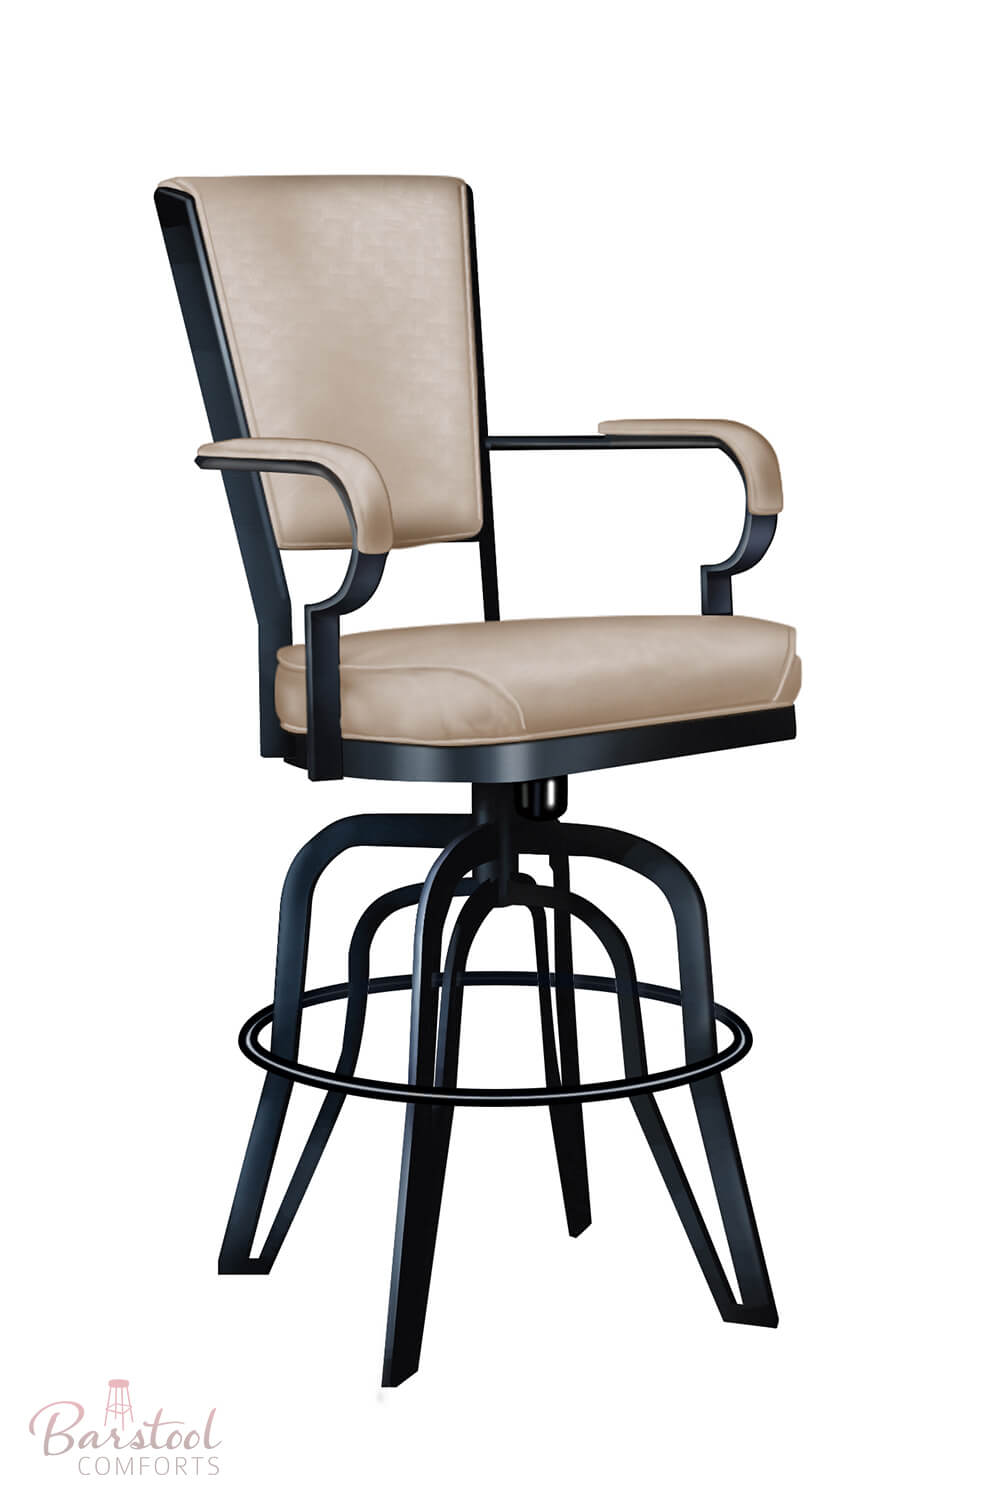 Magnificent Lisa Furniture 2545 Rocking Tilt Swivel Bar Stool Pabps2019 Chair Design Images Pabps2019Com